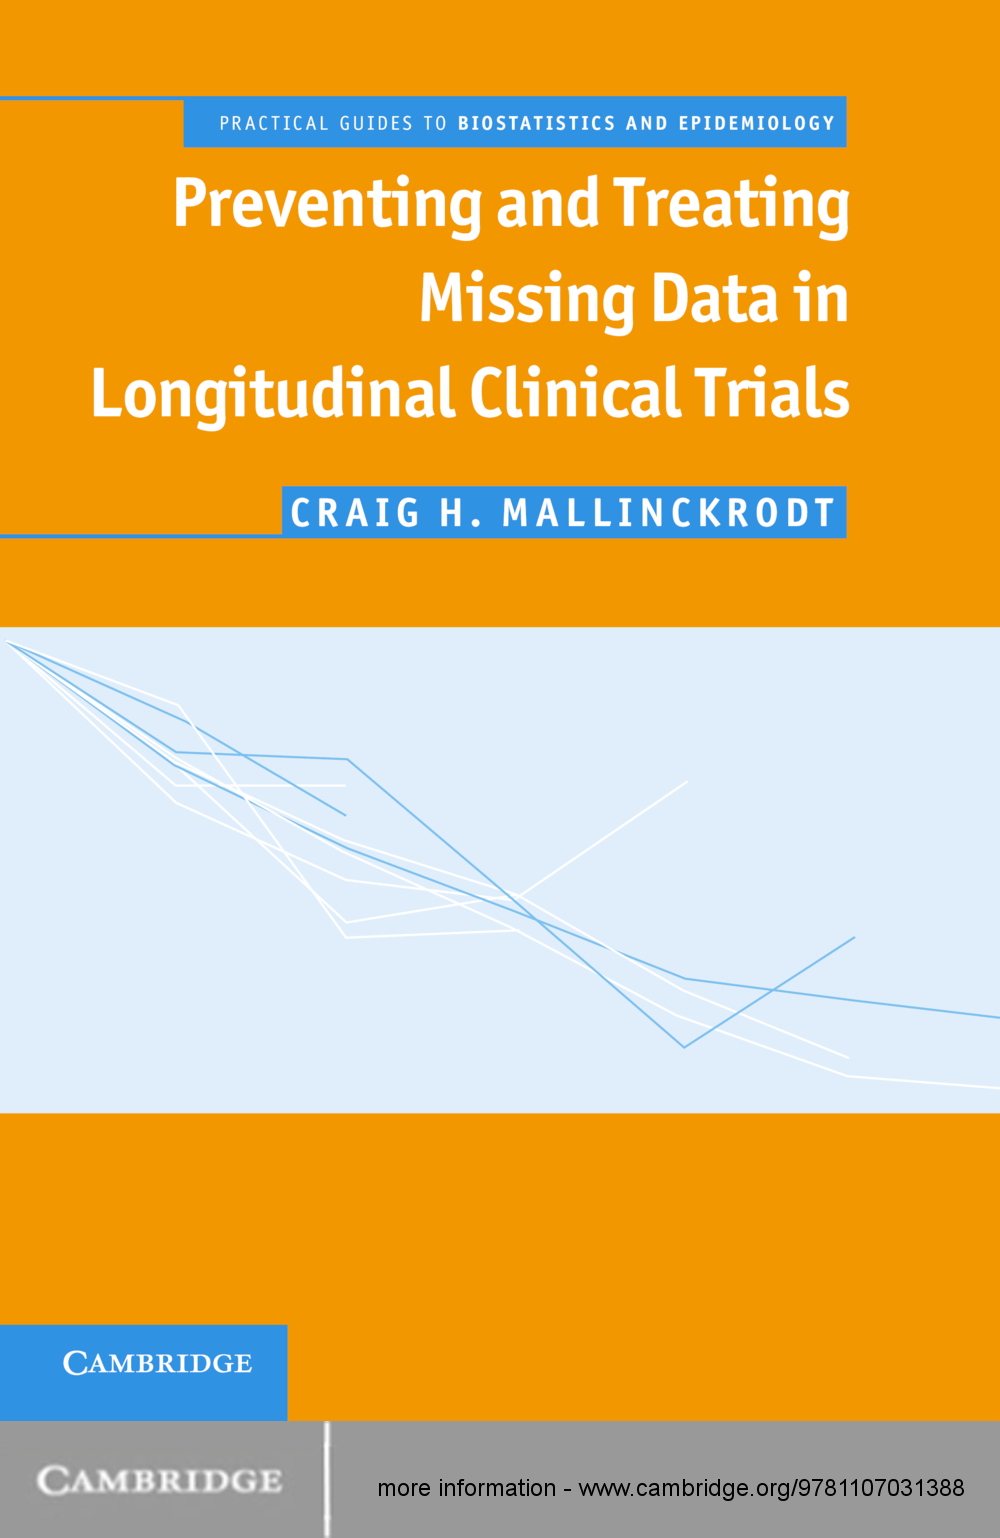 Preventing and Treating Missing Data in Longitudinal Clinical Trials A Practical Guide